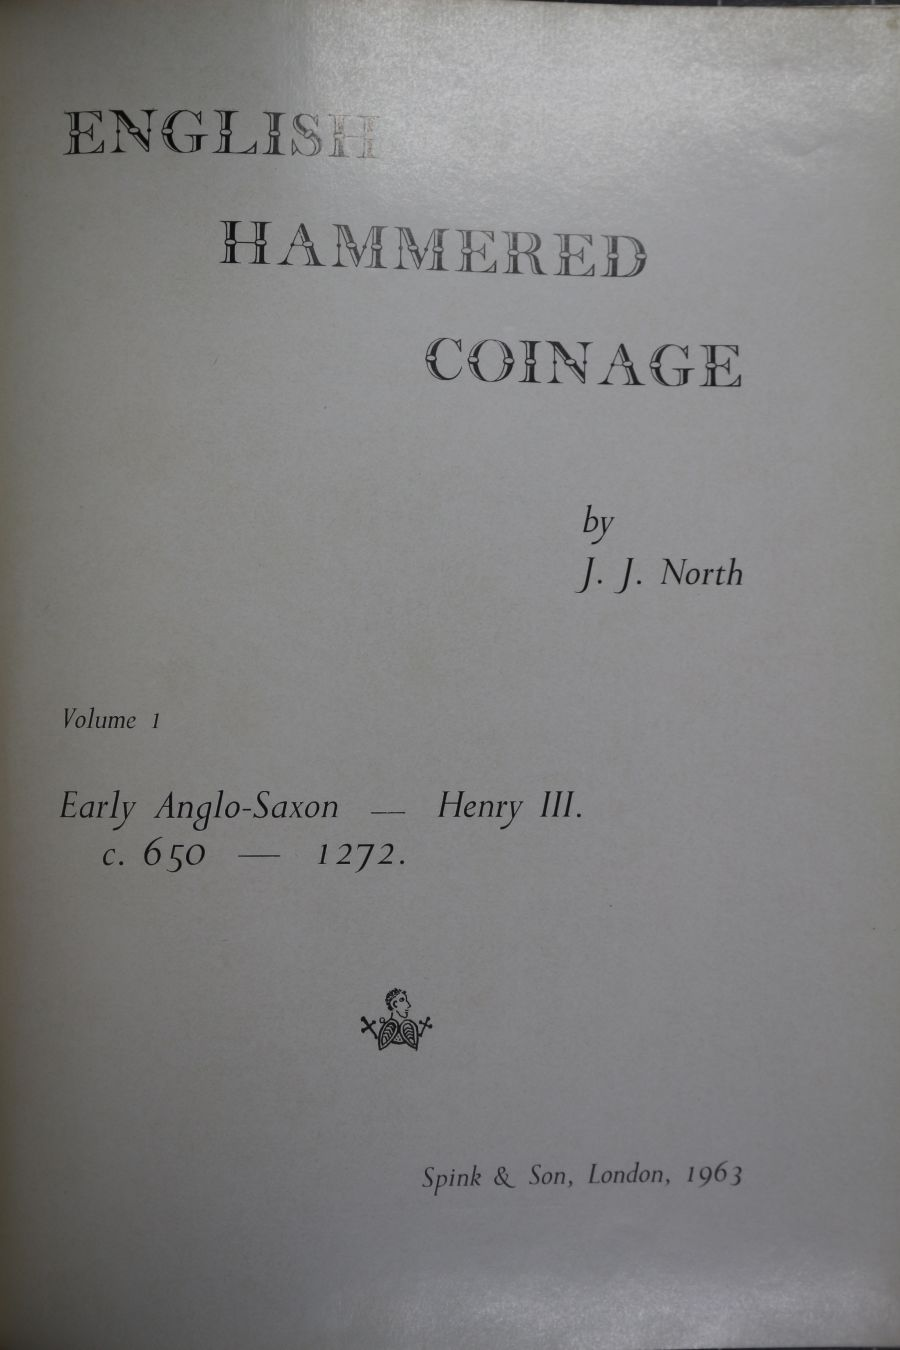 English Hammered Coinage, Volume 1, J. J. North, 1st edition, blue cloth